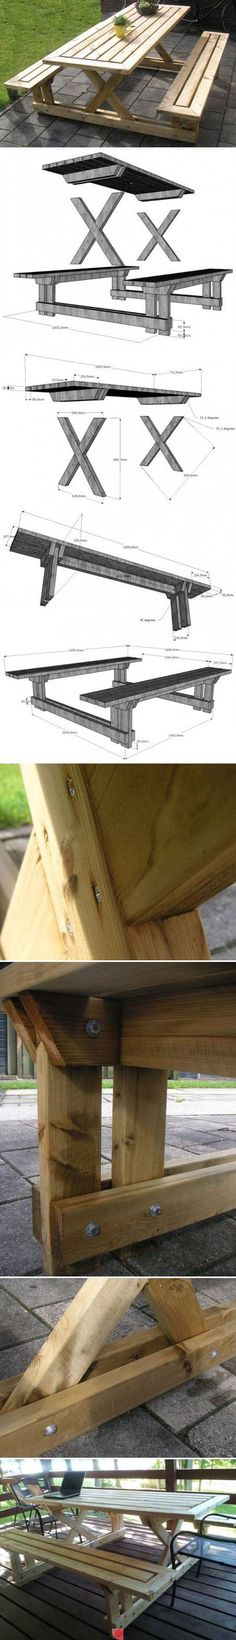 DIY Garden Bench and Table garden table diy crafts easy crafts diy ideas diy crafts do it yourself easy diy diy tips diy furniture home crafts craft f.